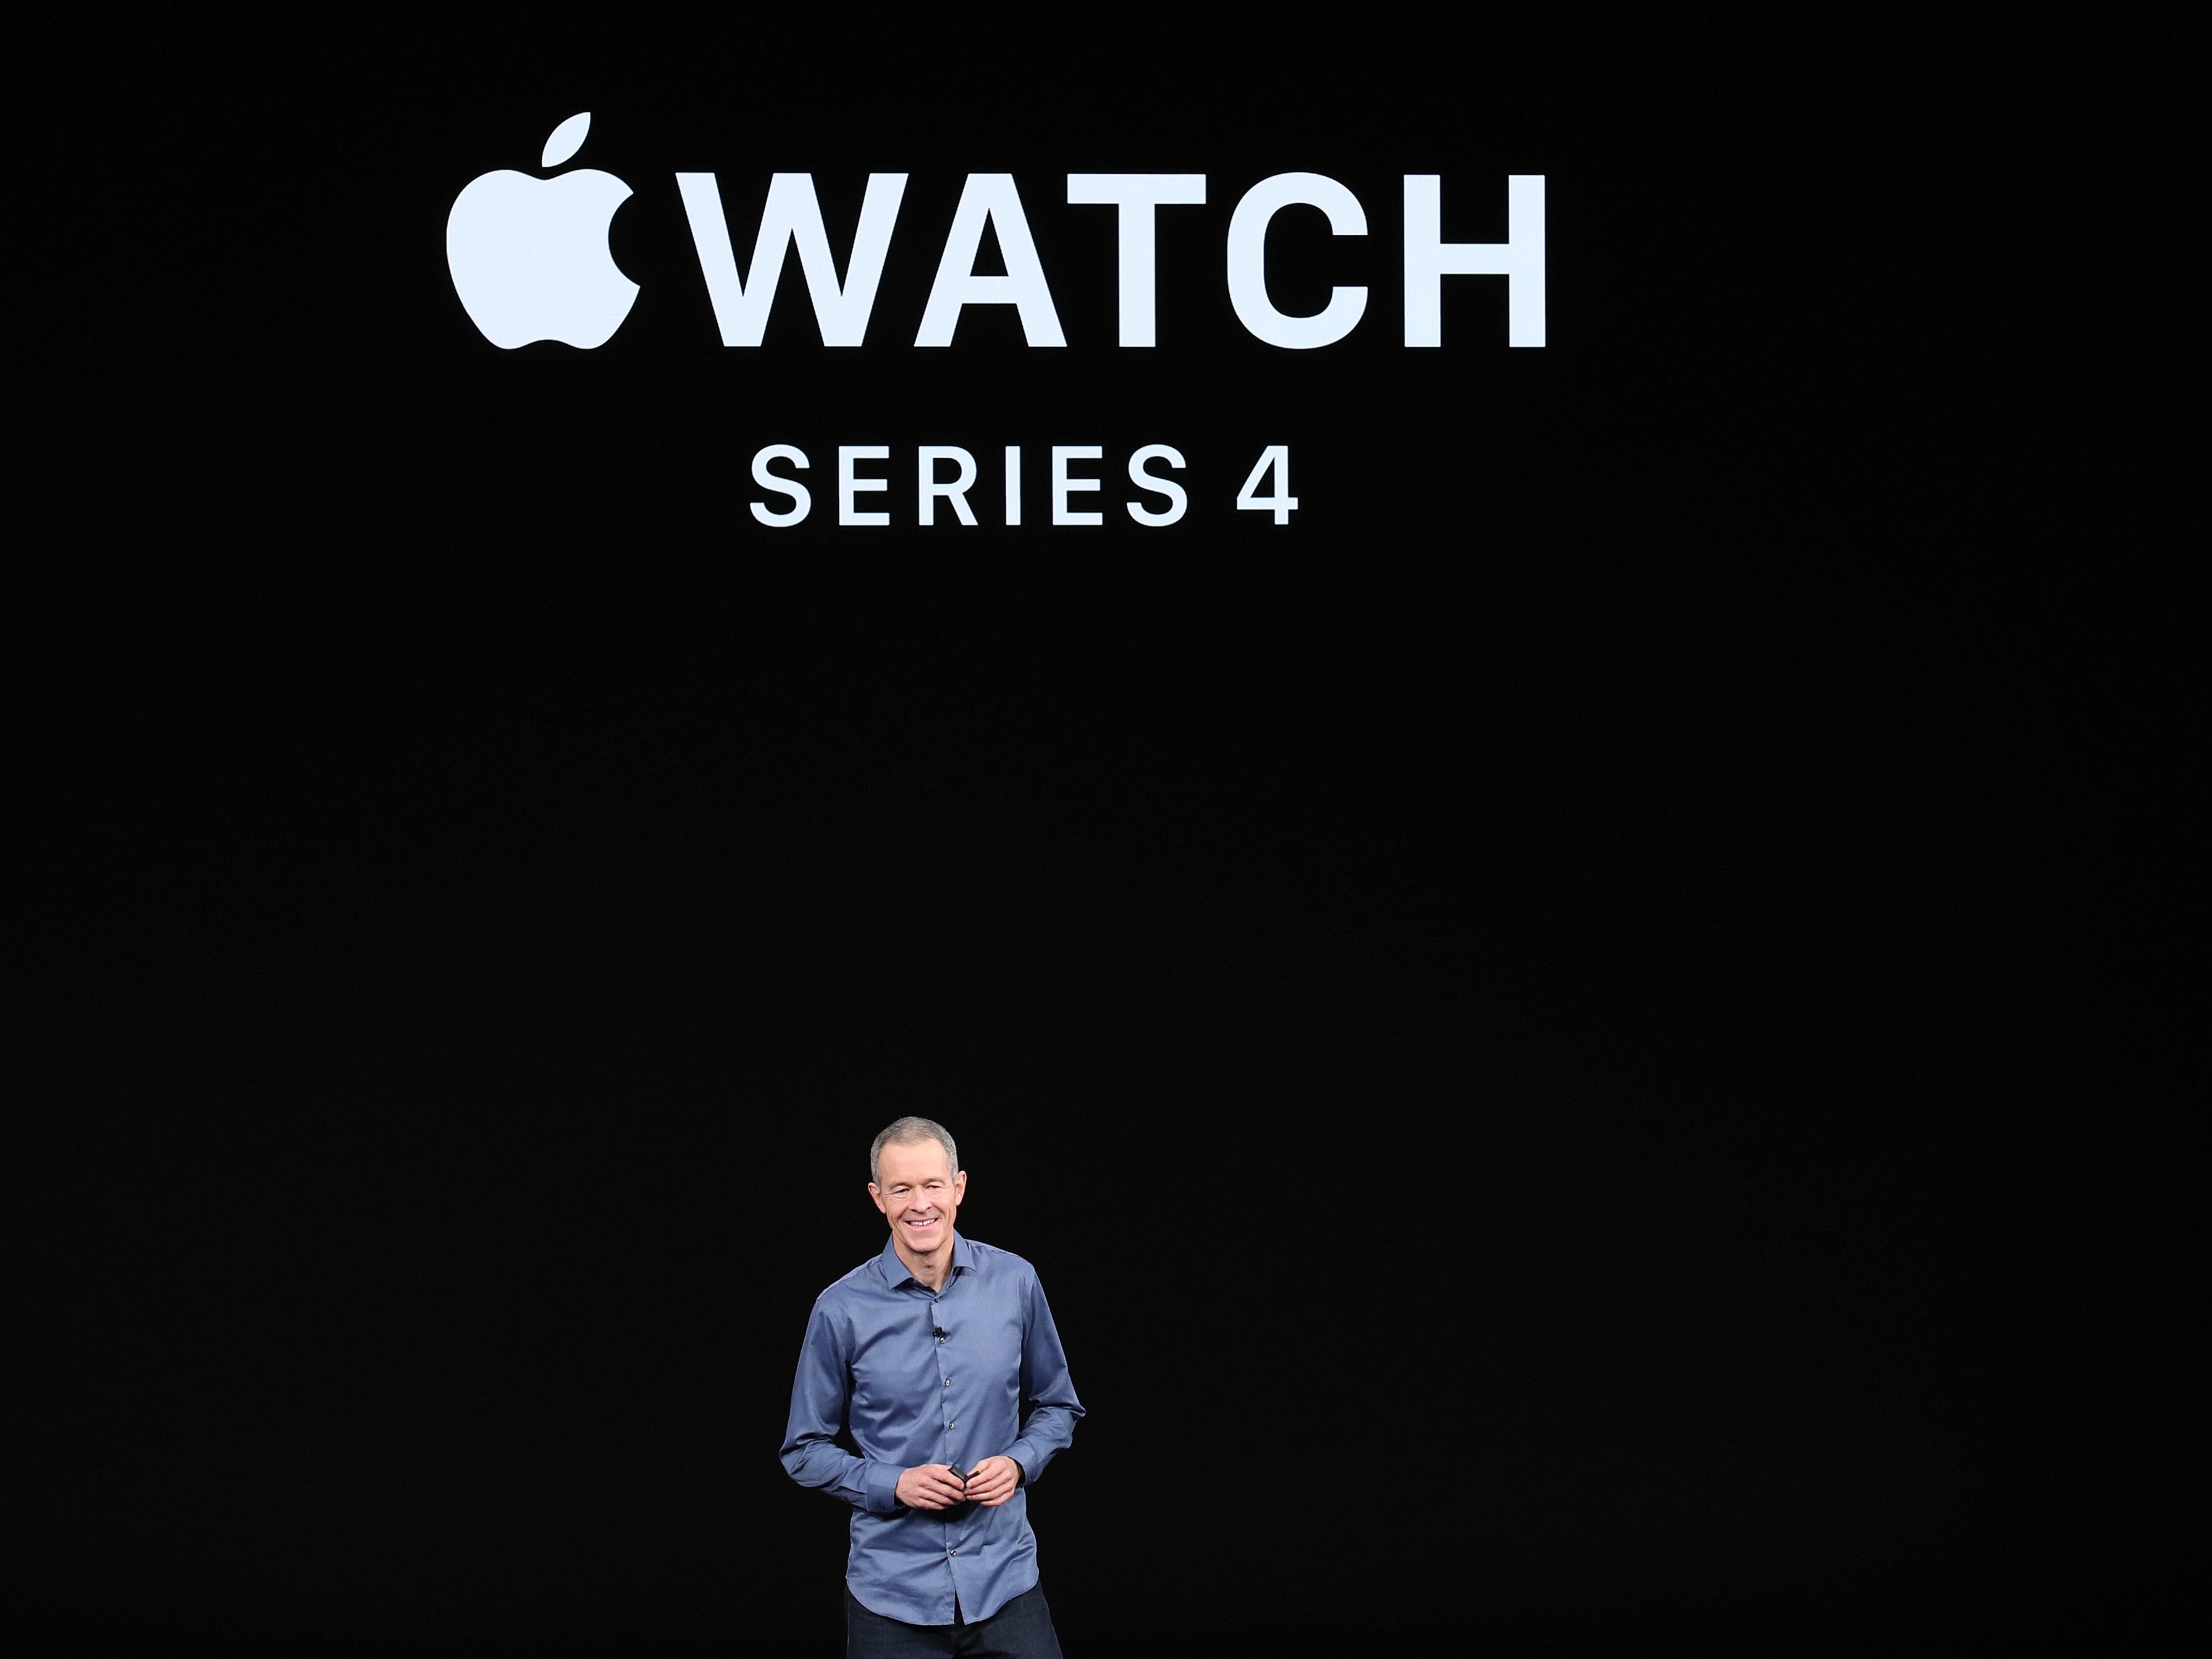 Jeff Williams, chief operating officer of Apple Inc., speaks during an Apple event at the Steve Jobs Theater at Apple Park on Sept. 12, 2018 in Cupertino, Calif.